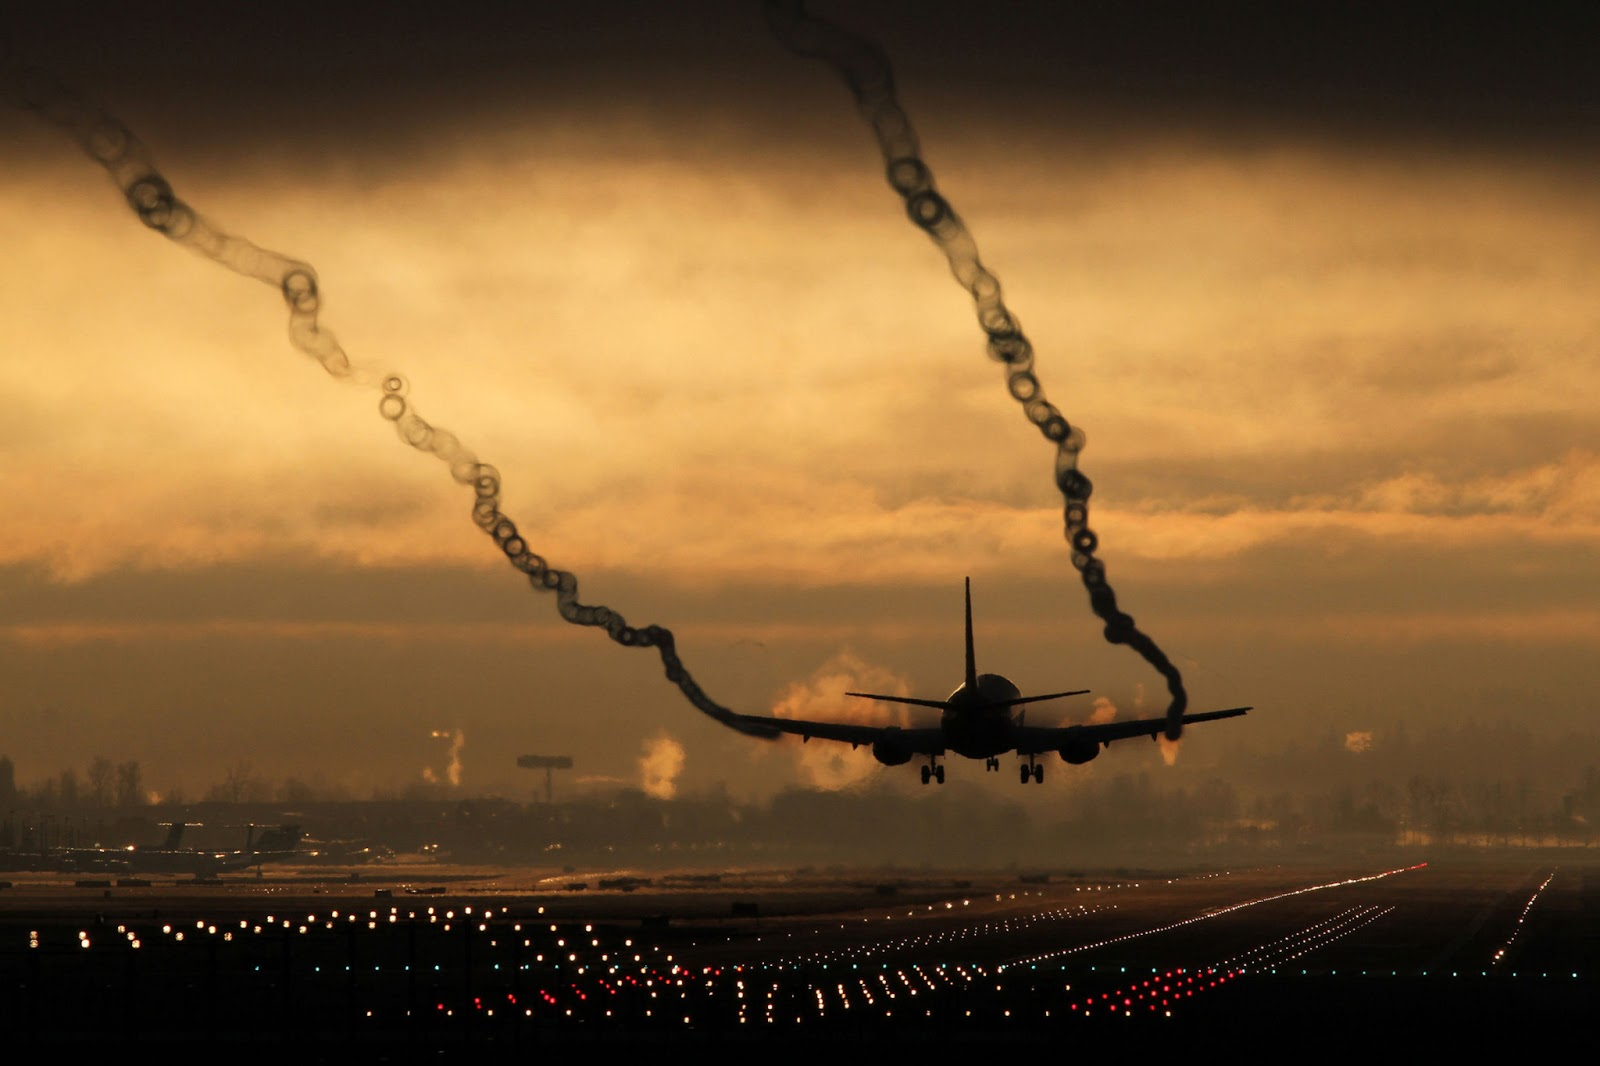 Wake Turbulence: See You On The Flip(ped over) Side